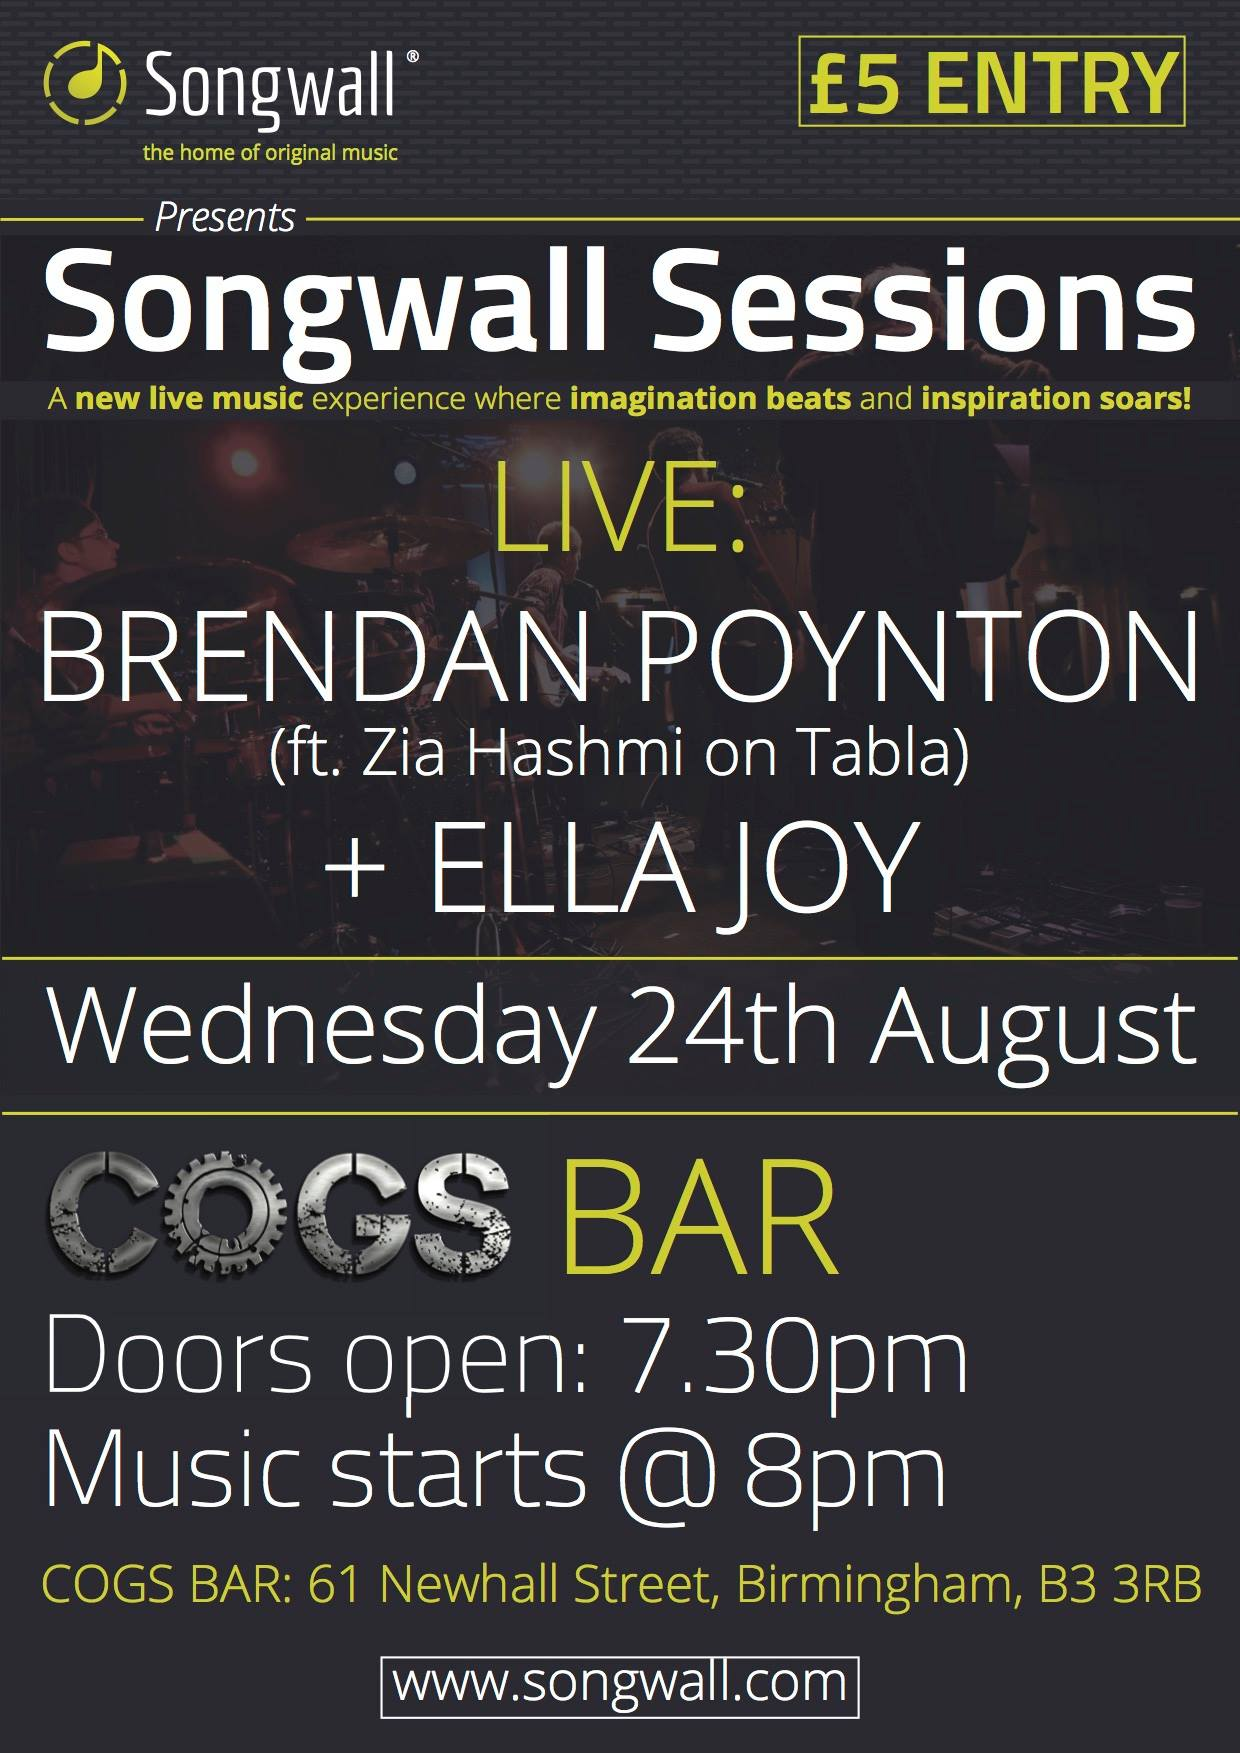 Songwall Sessions Cogs Bar